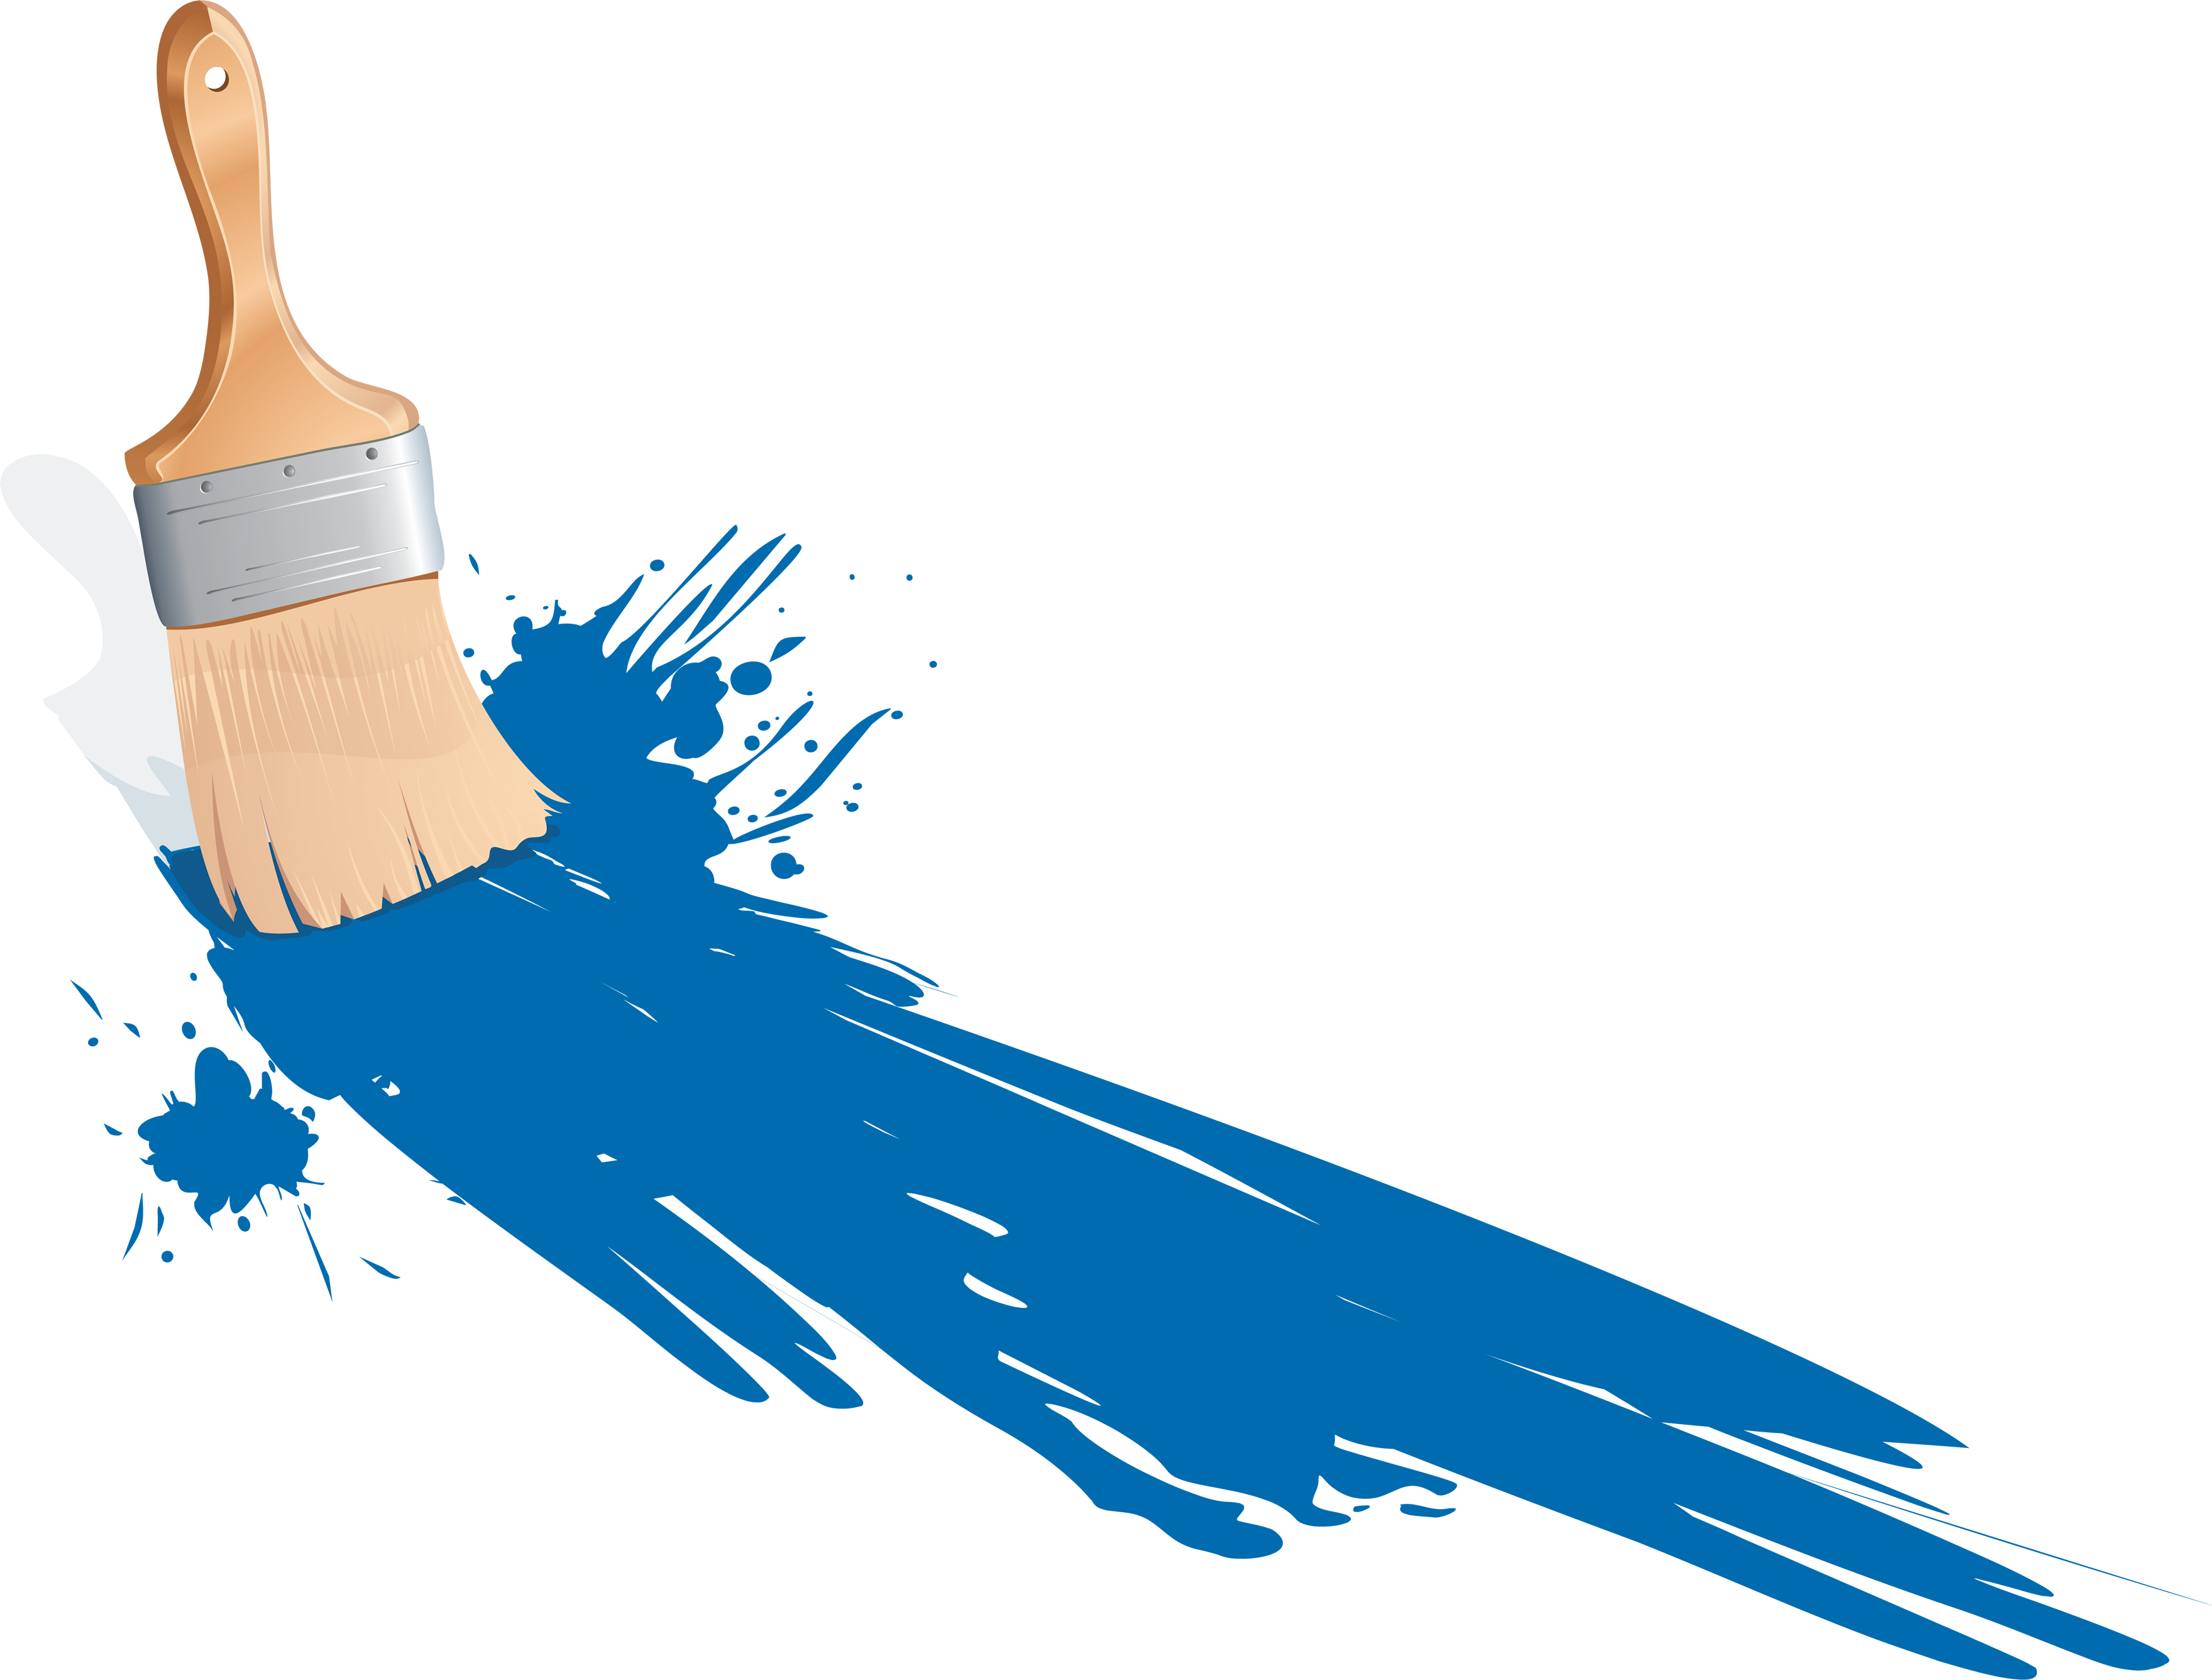 Paint Brush Png Image PNG Image - Paint PNG